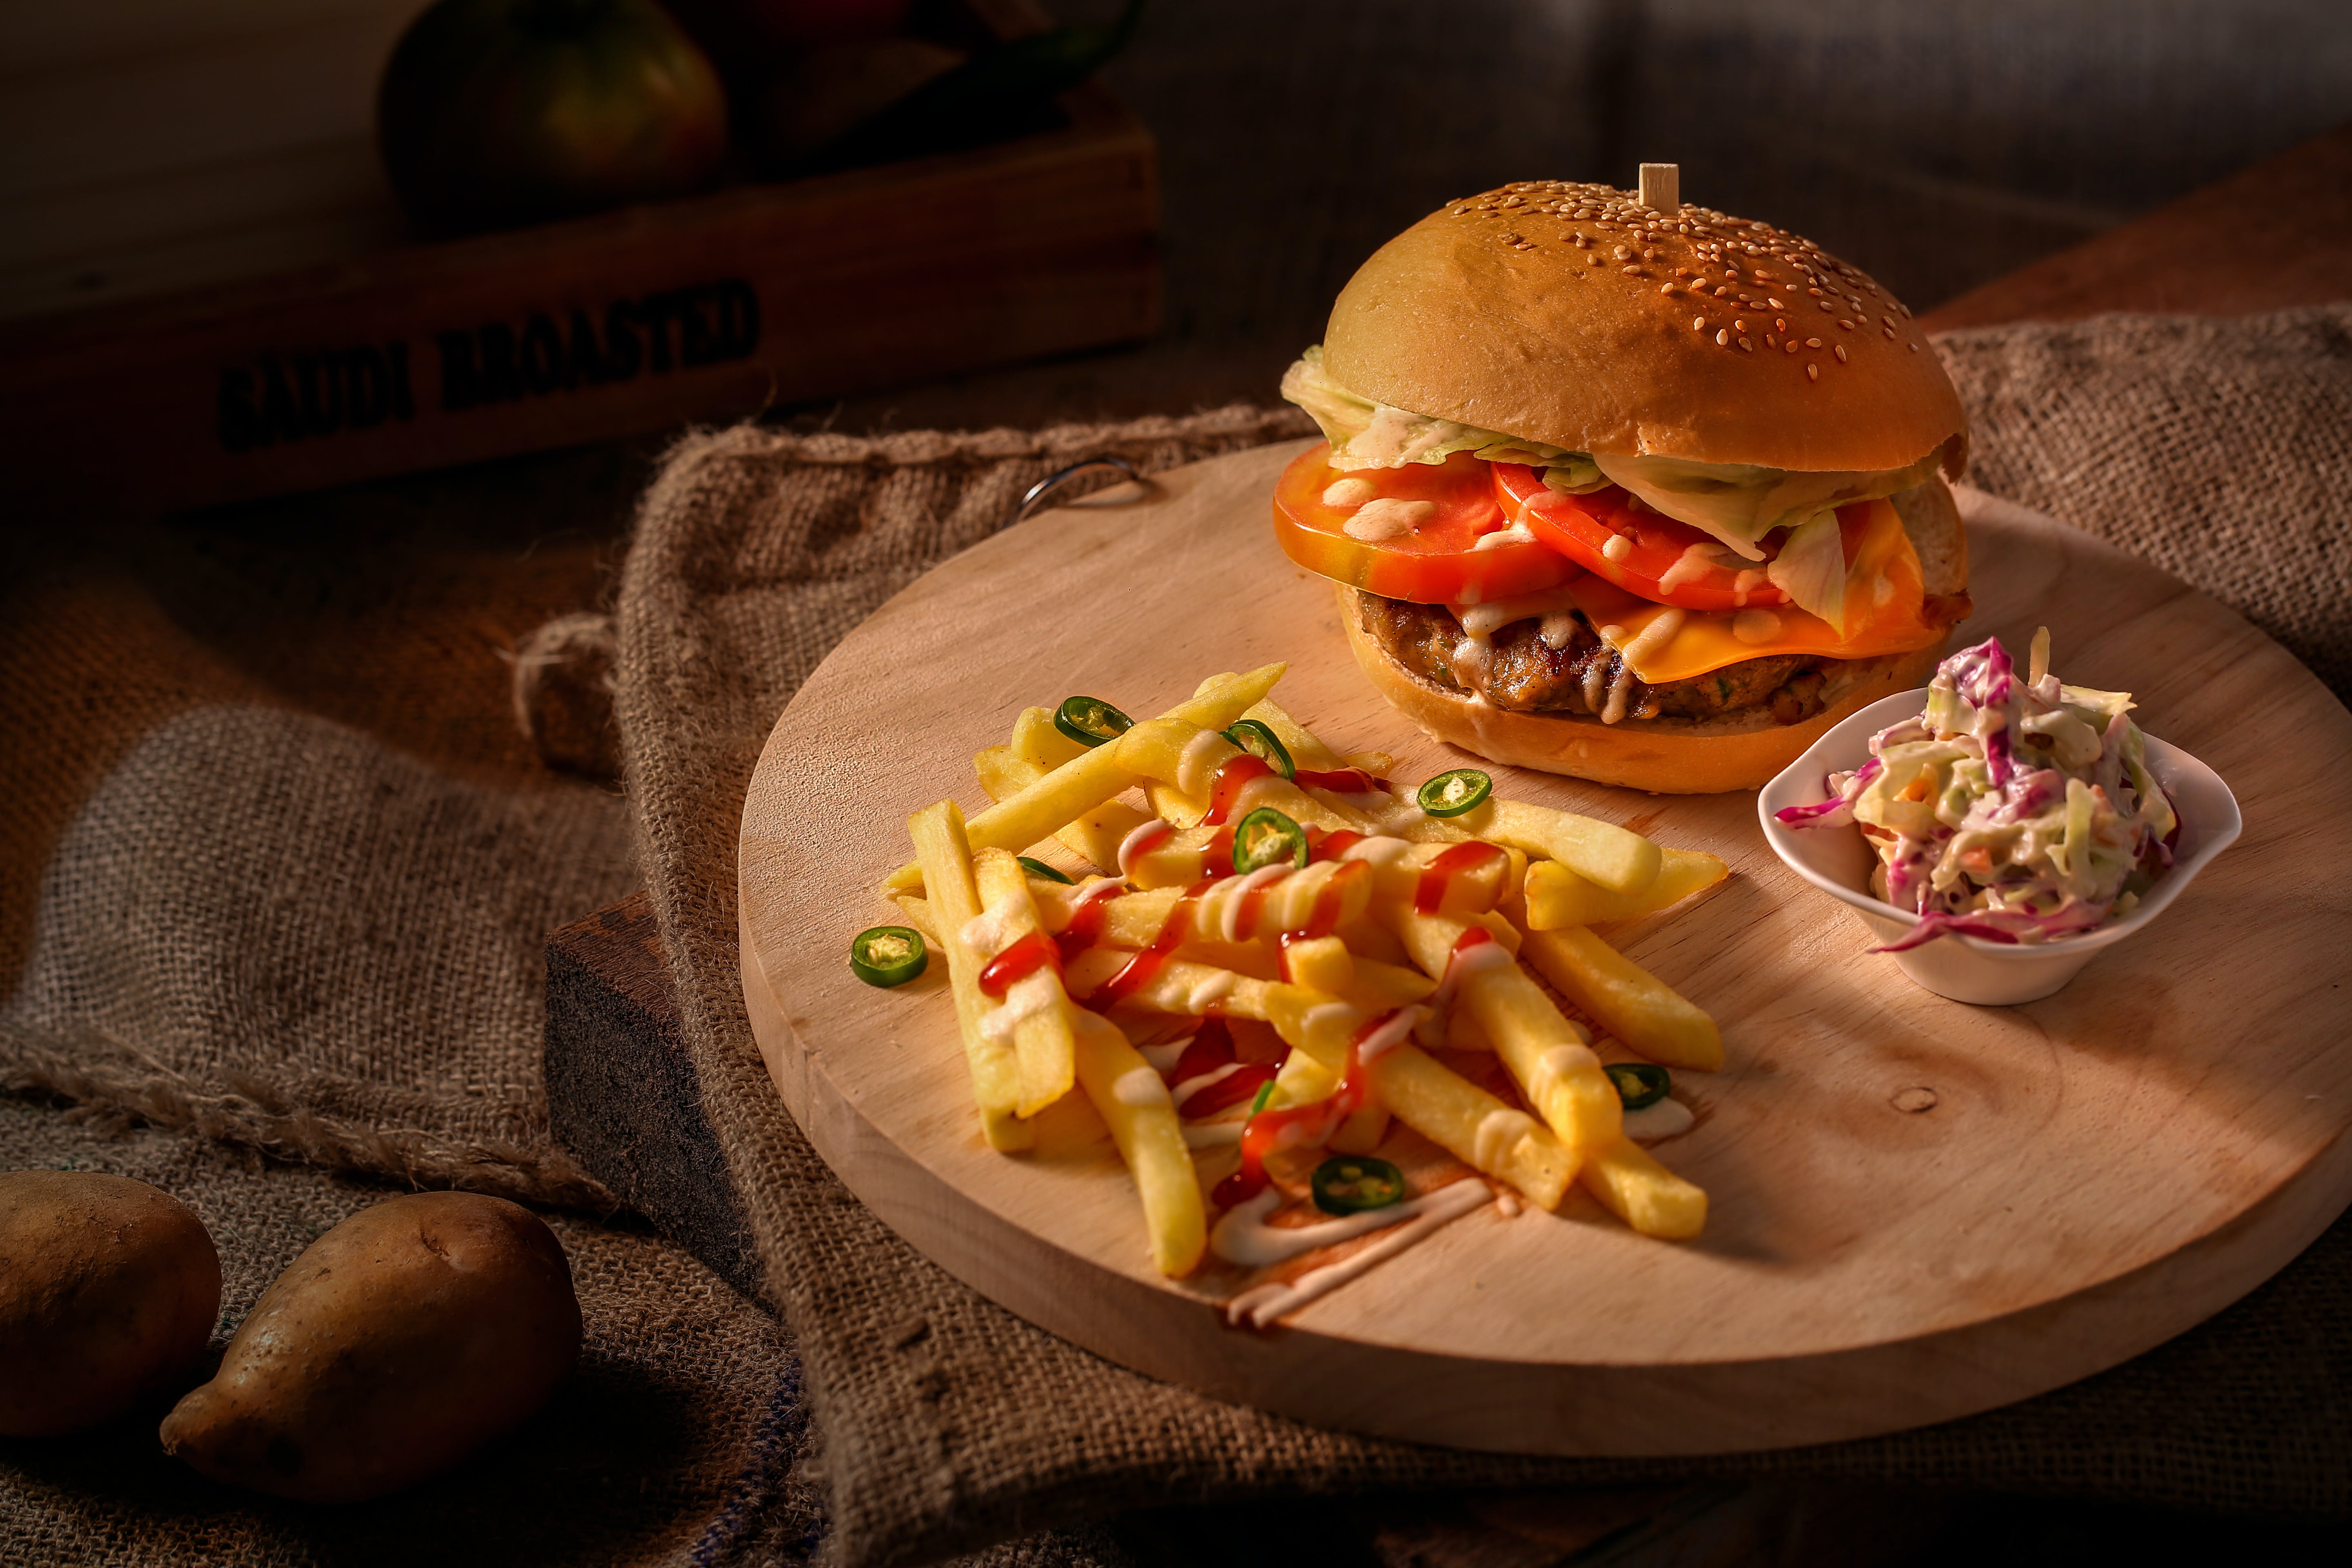 Tomato Burger and Fried Fries